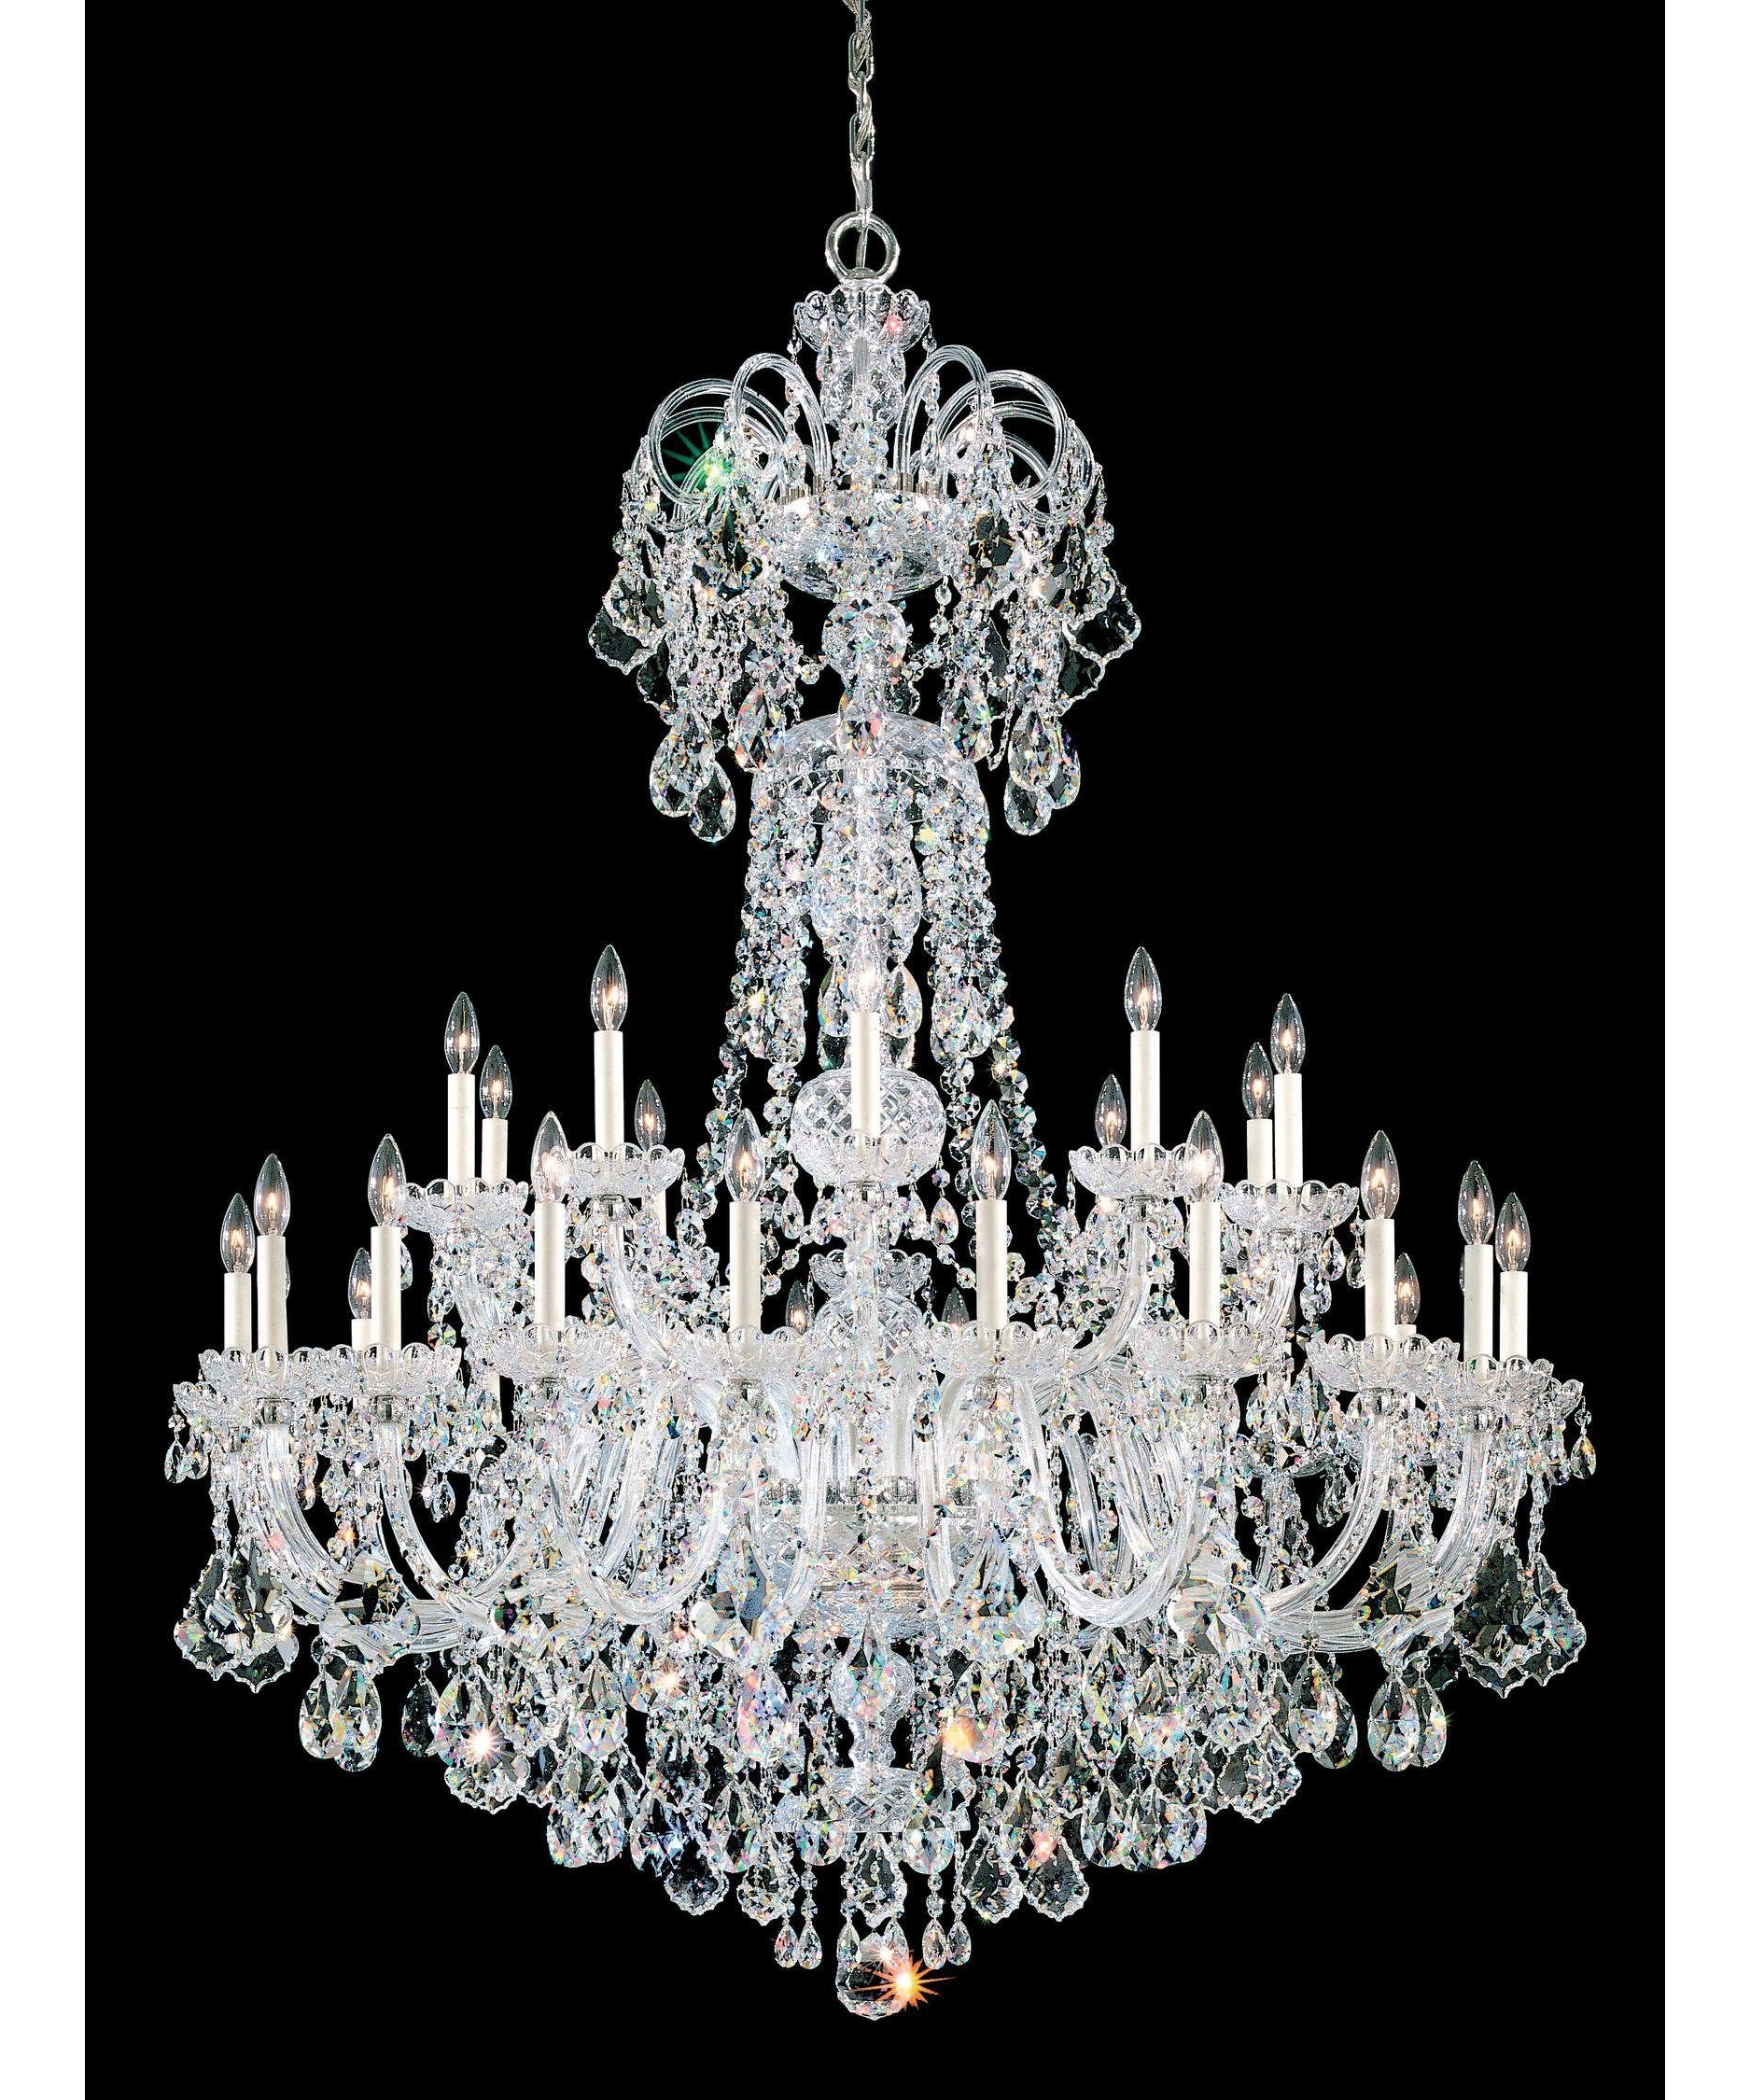 2019 Chandelier : Glass Chandelier Swag Chandelier Linear Chandelier Inside Black Gothic Chandelier (View 2 of 20)